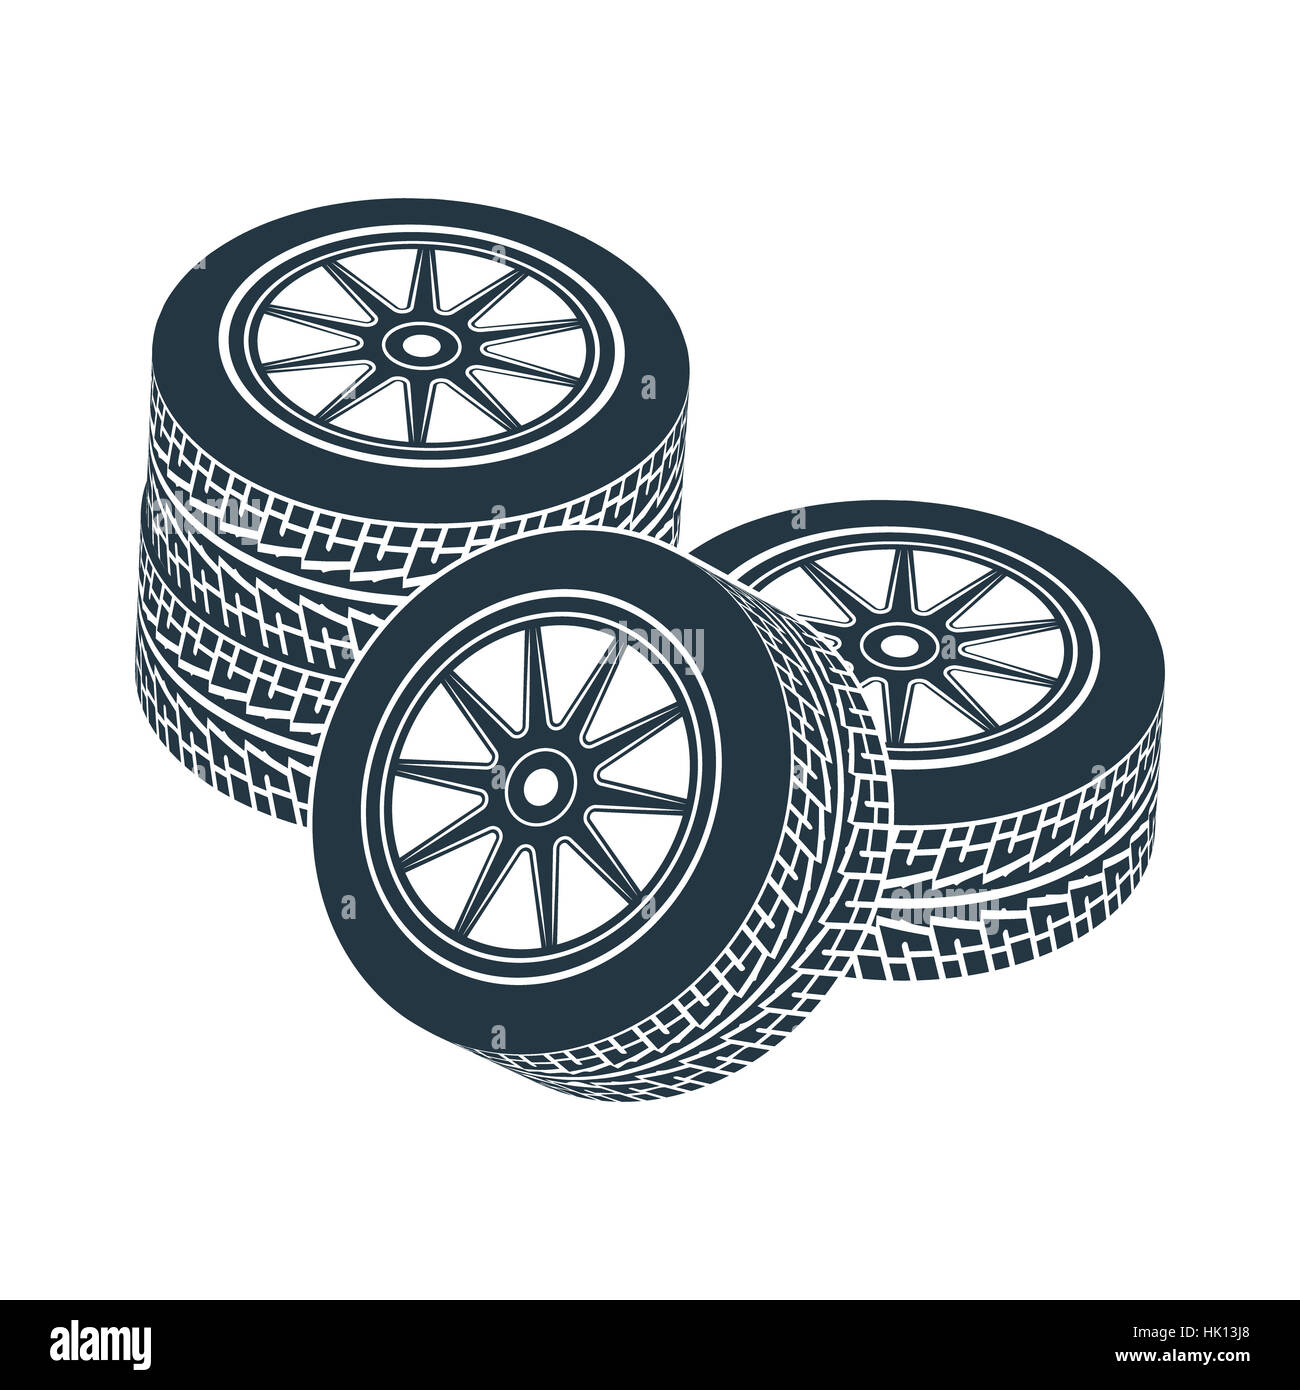 Wheels for cars with a tread pattern. Photo illustration. - Stock Image